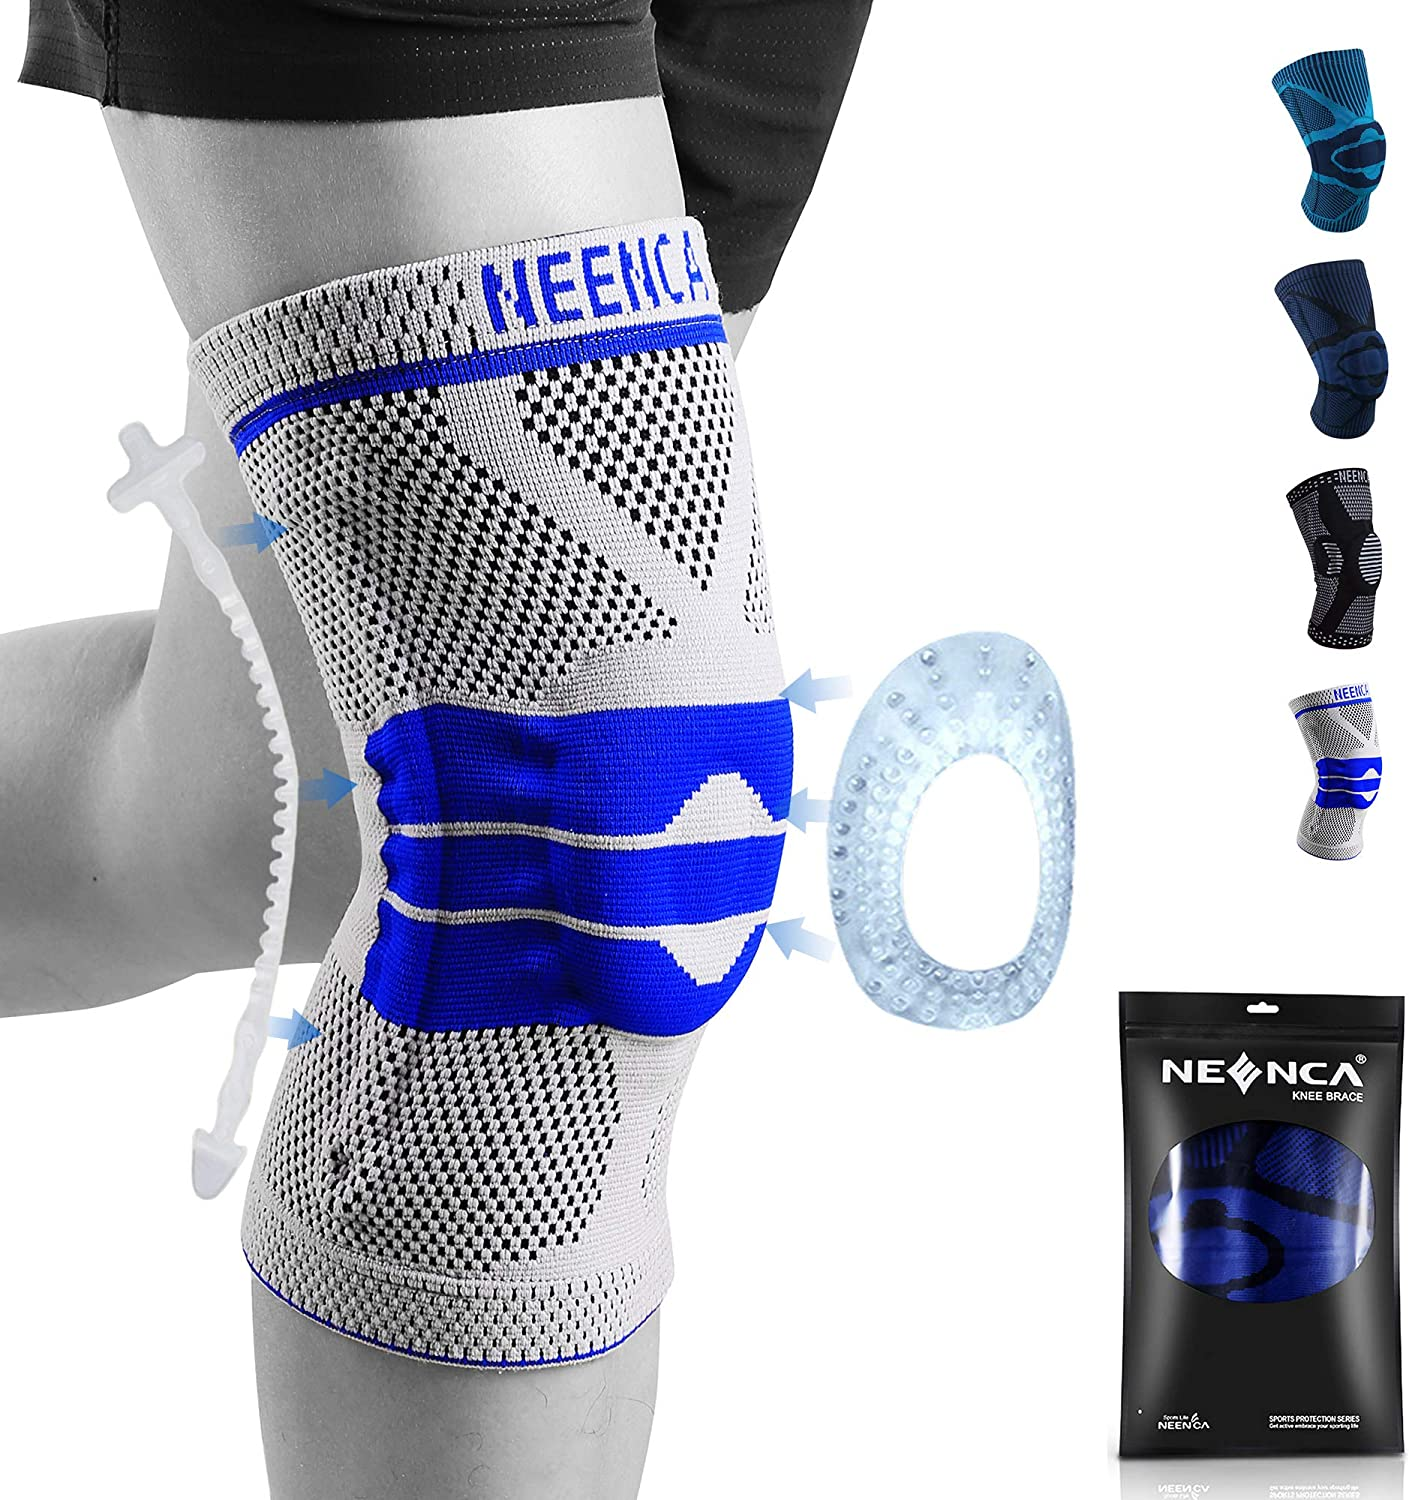 NEENCA Knee Brace,Knee Compression Sleeve Support with Patella Gel Pad & Side Spring Stabilizers,Medical Grade Knee Protector for Running,Meniscus Tear,Arthritis,Joint Pain Relief,ACL,Injury Recovery: Sports & Outdoors